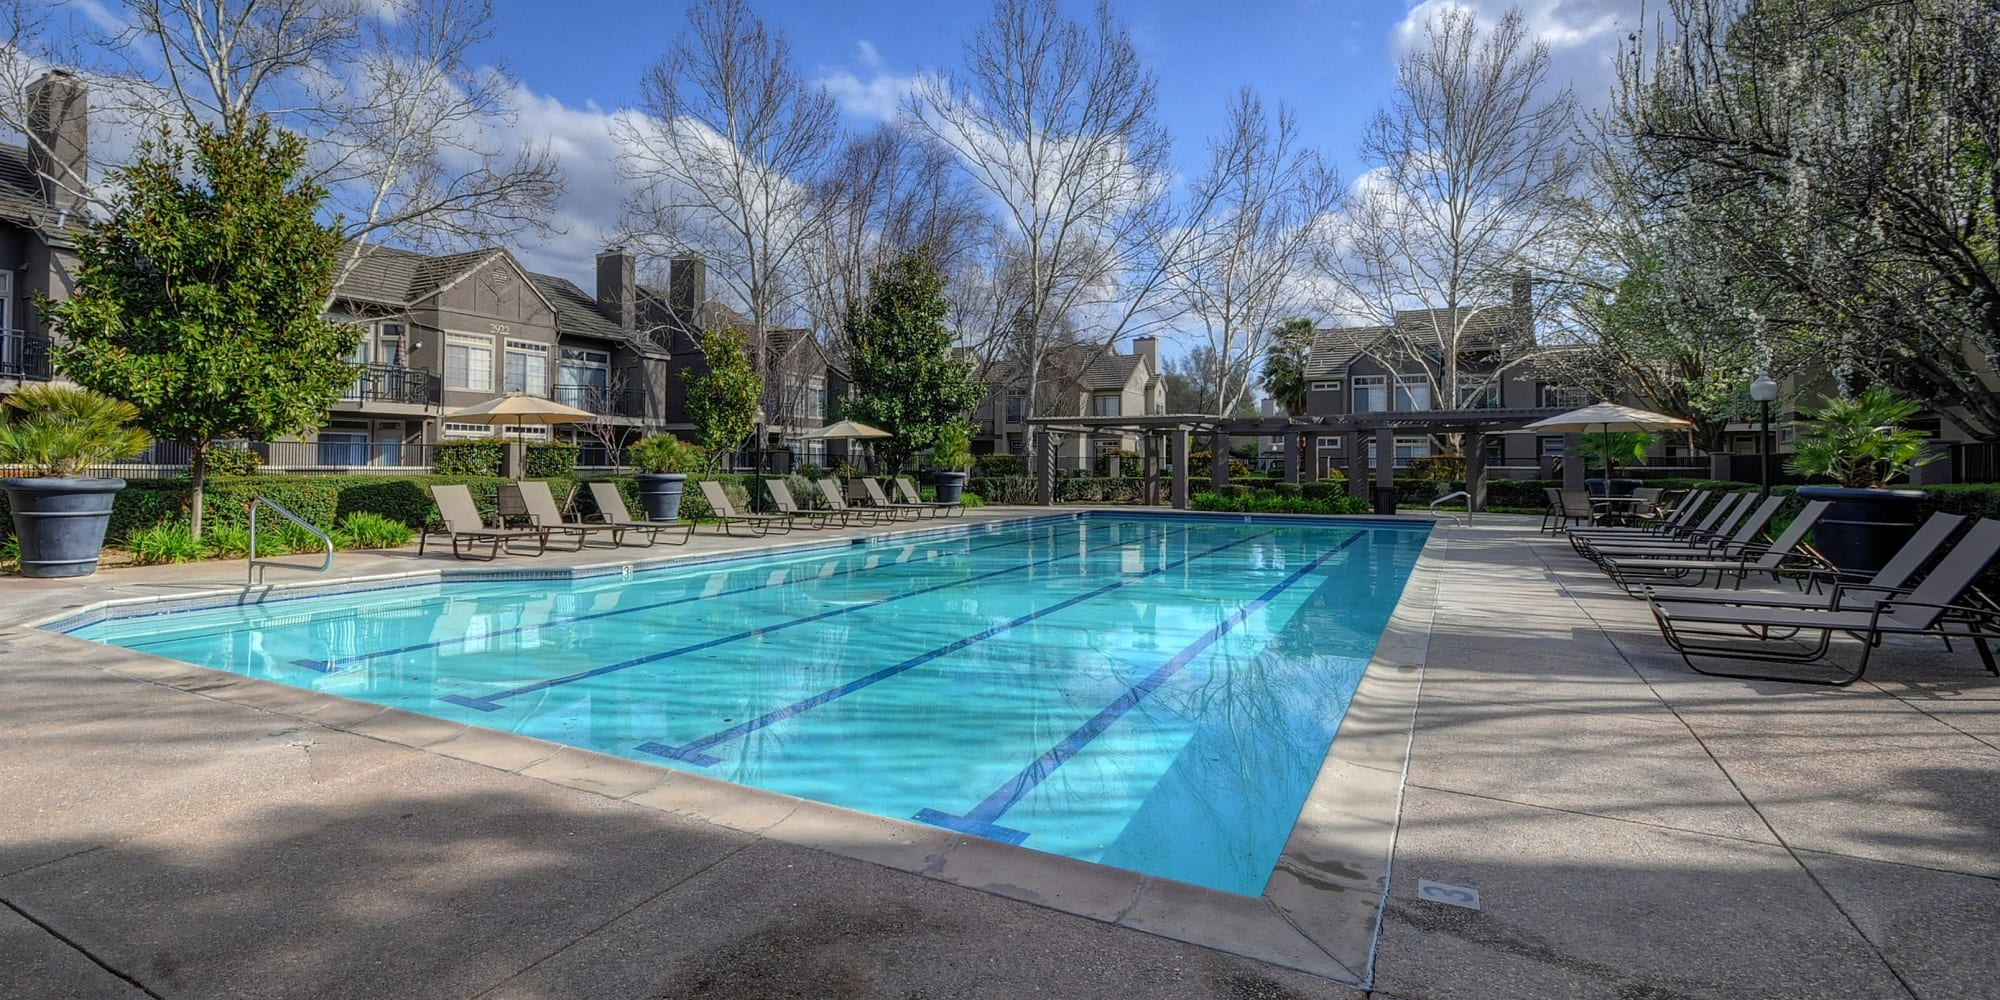 Apartments at Larkspur Woods in Sacramento, California